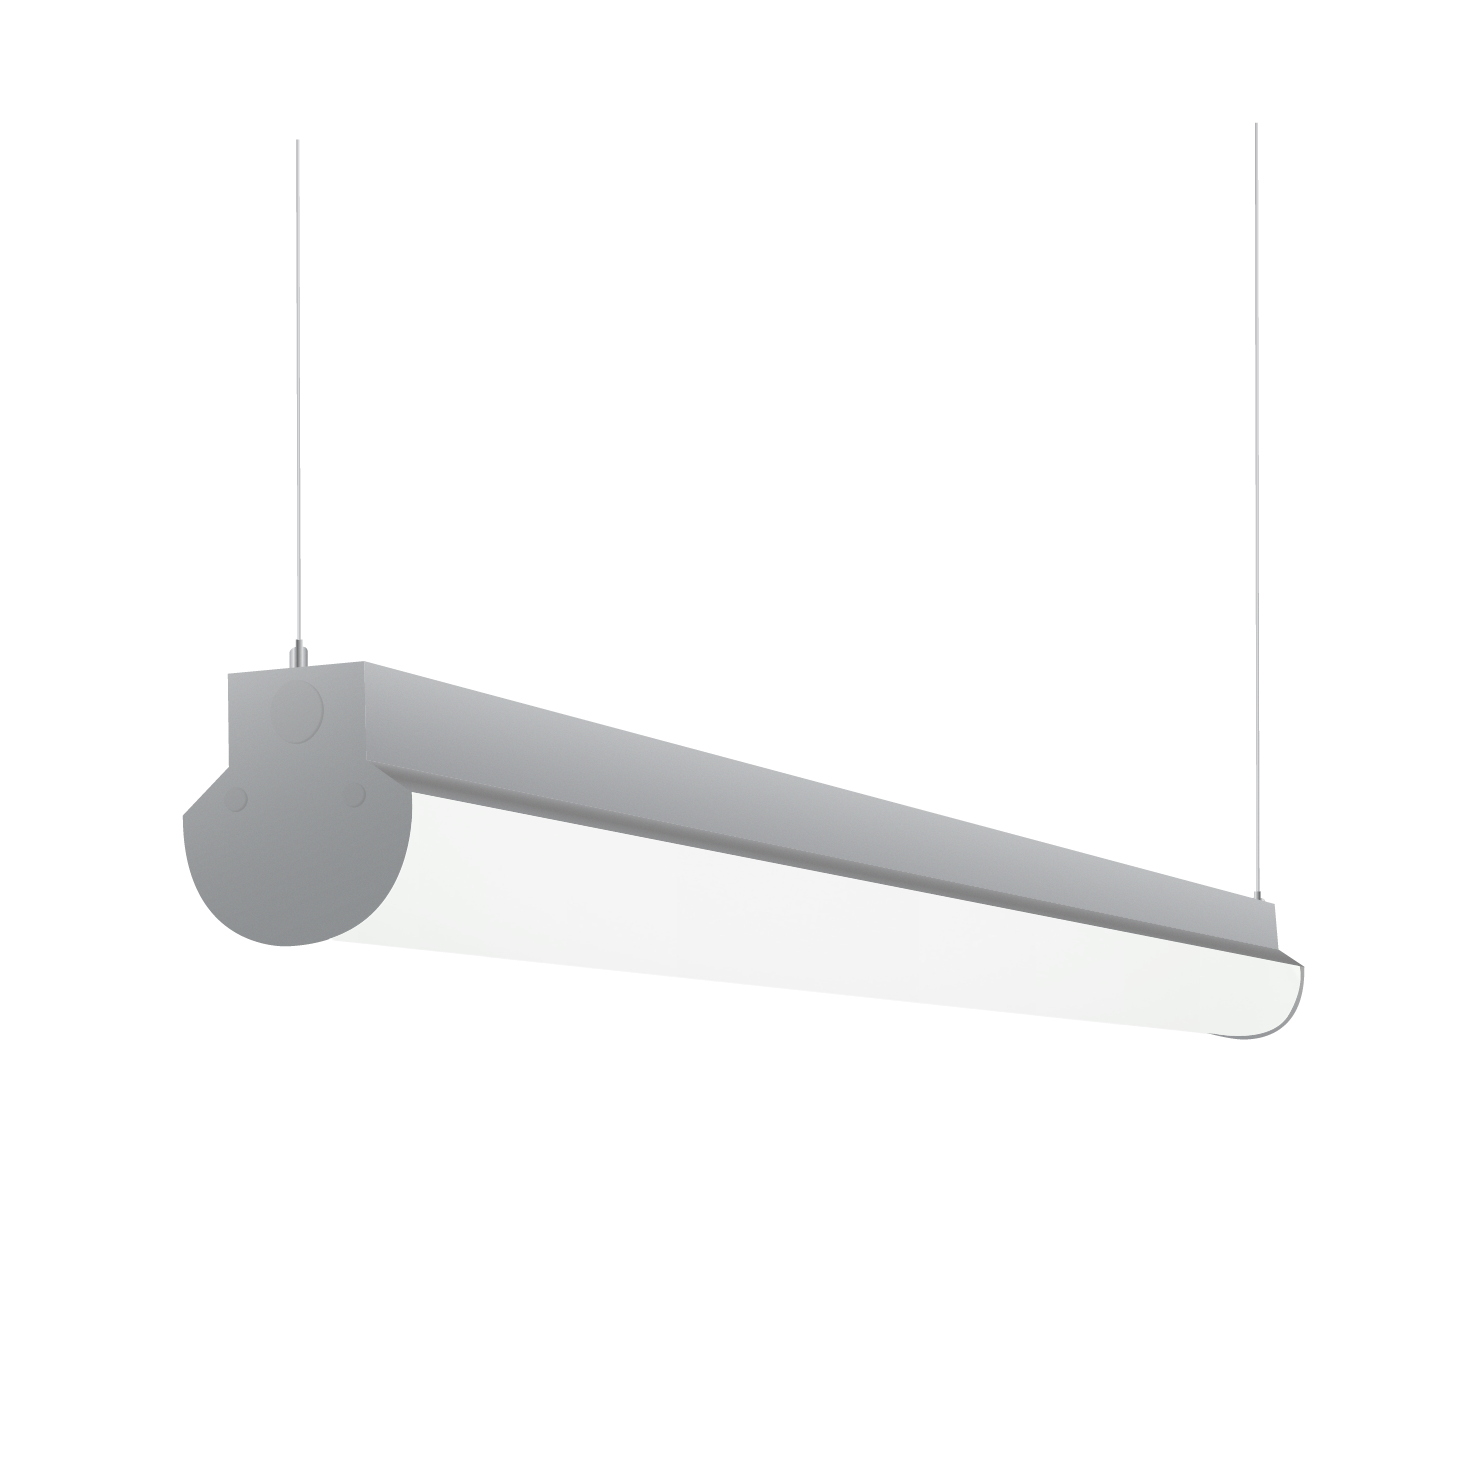 wholesale dealer 98df0 491c4 Alcon Lighting 12122-4 Lombardy Industrial Series Commercial LED 4 Foot  Linear Suspension Pendant Direct Down Light Strip